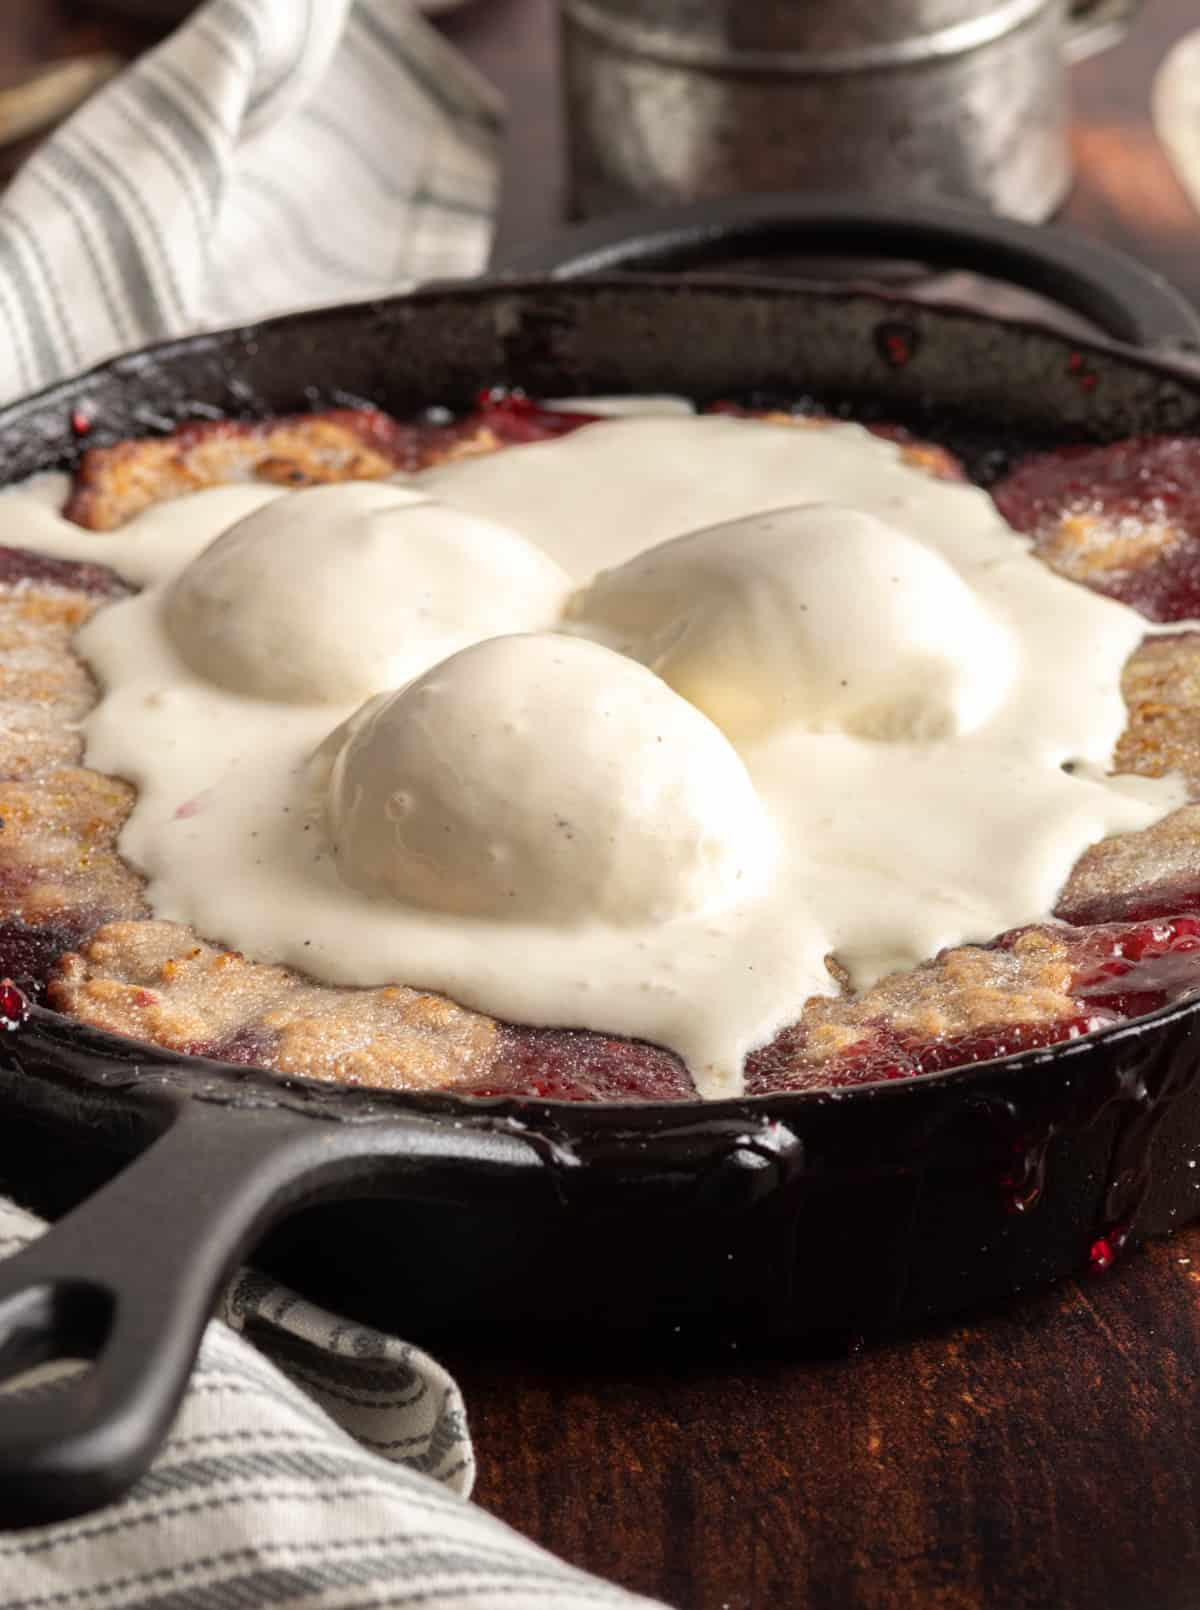 Ice cream on finished Berry Cobbler in cast iron skillet